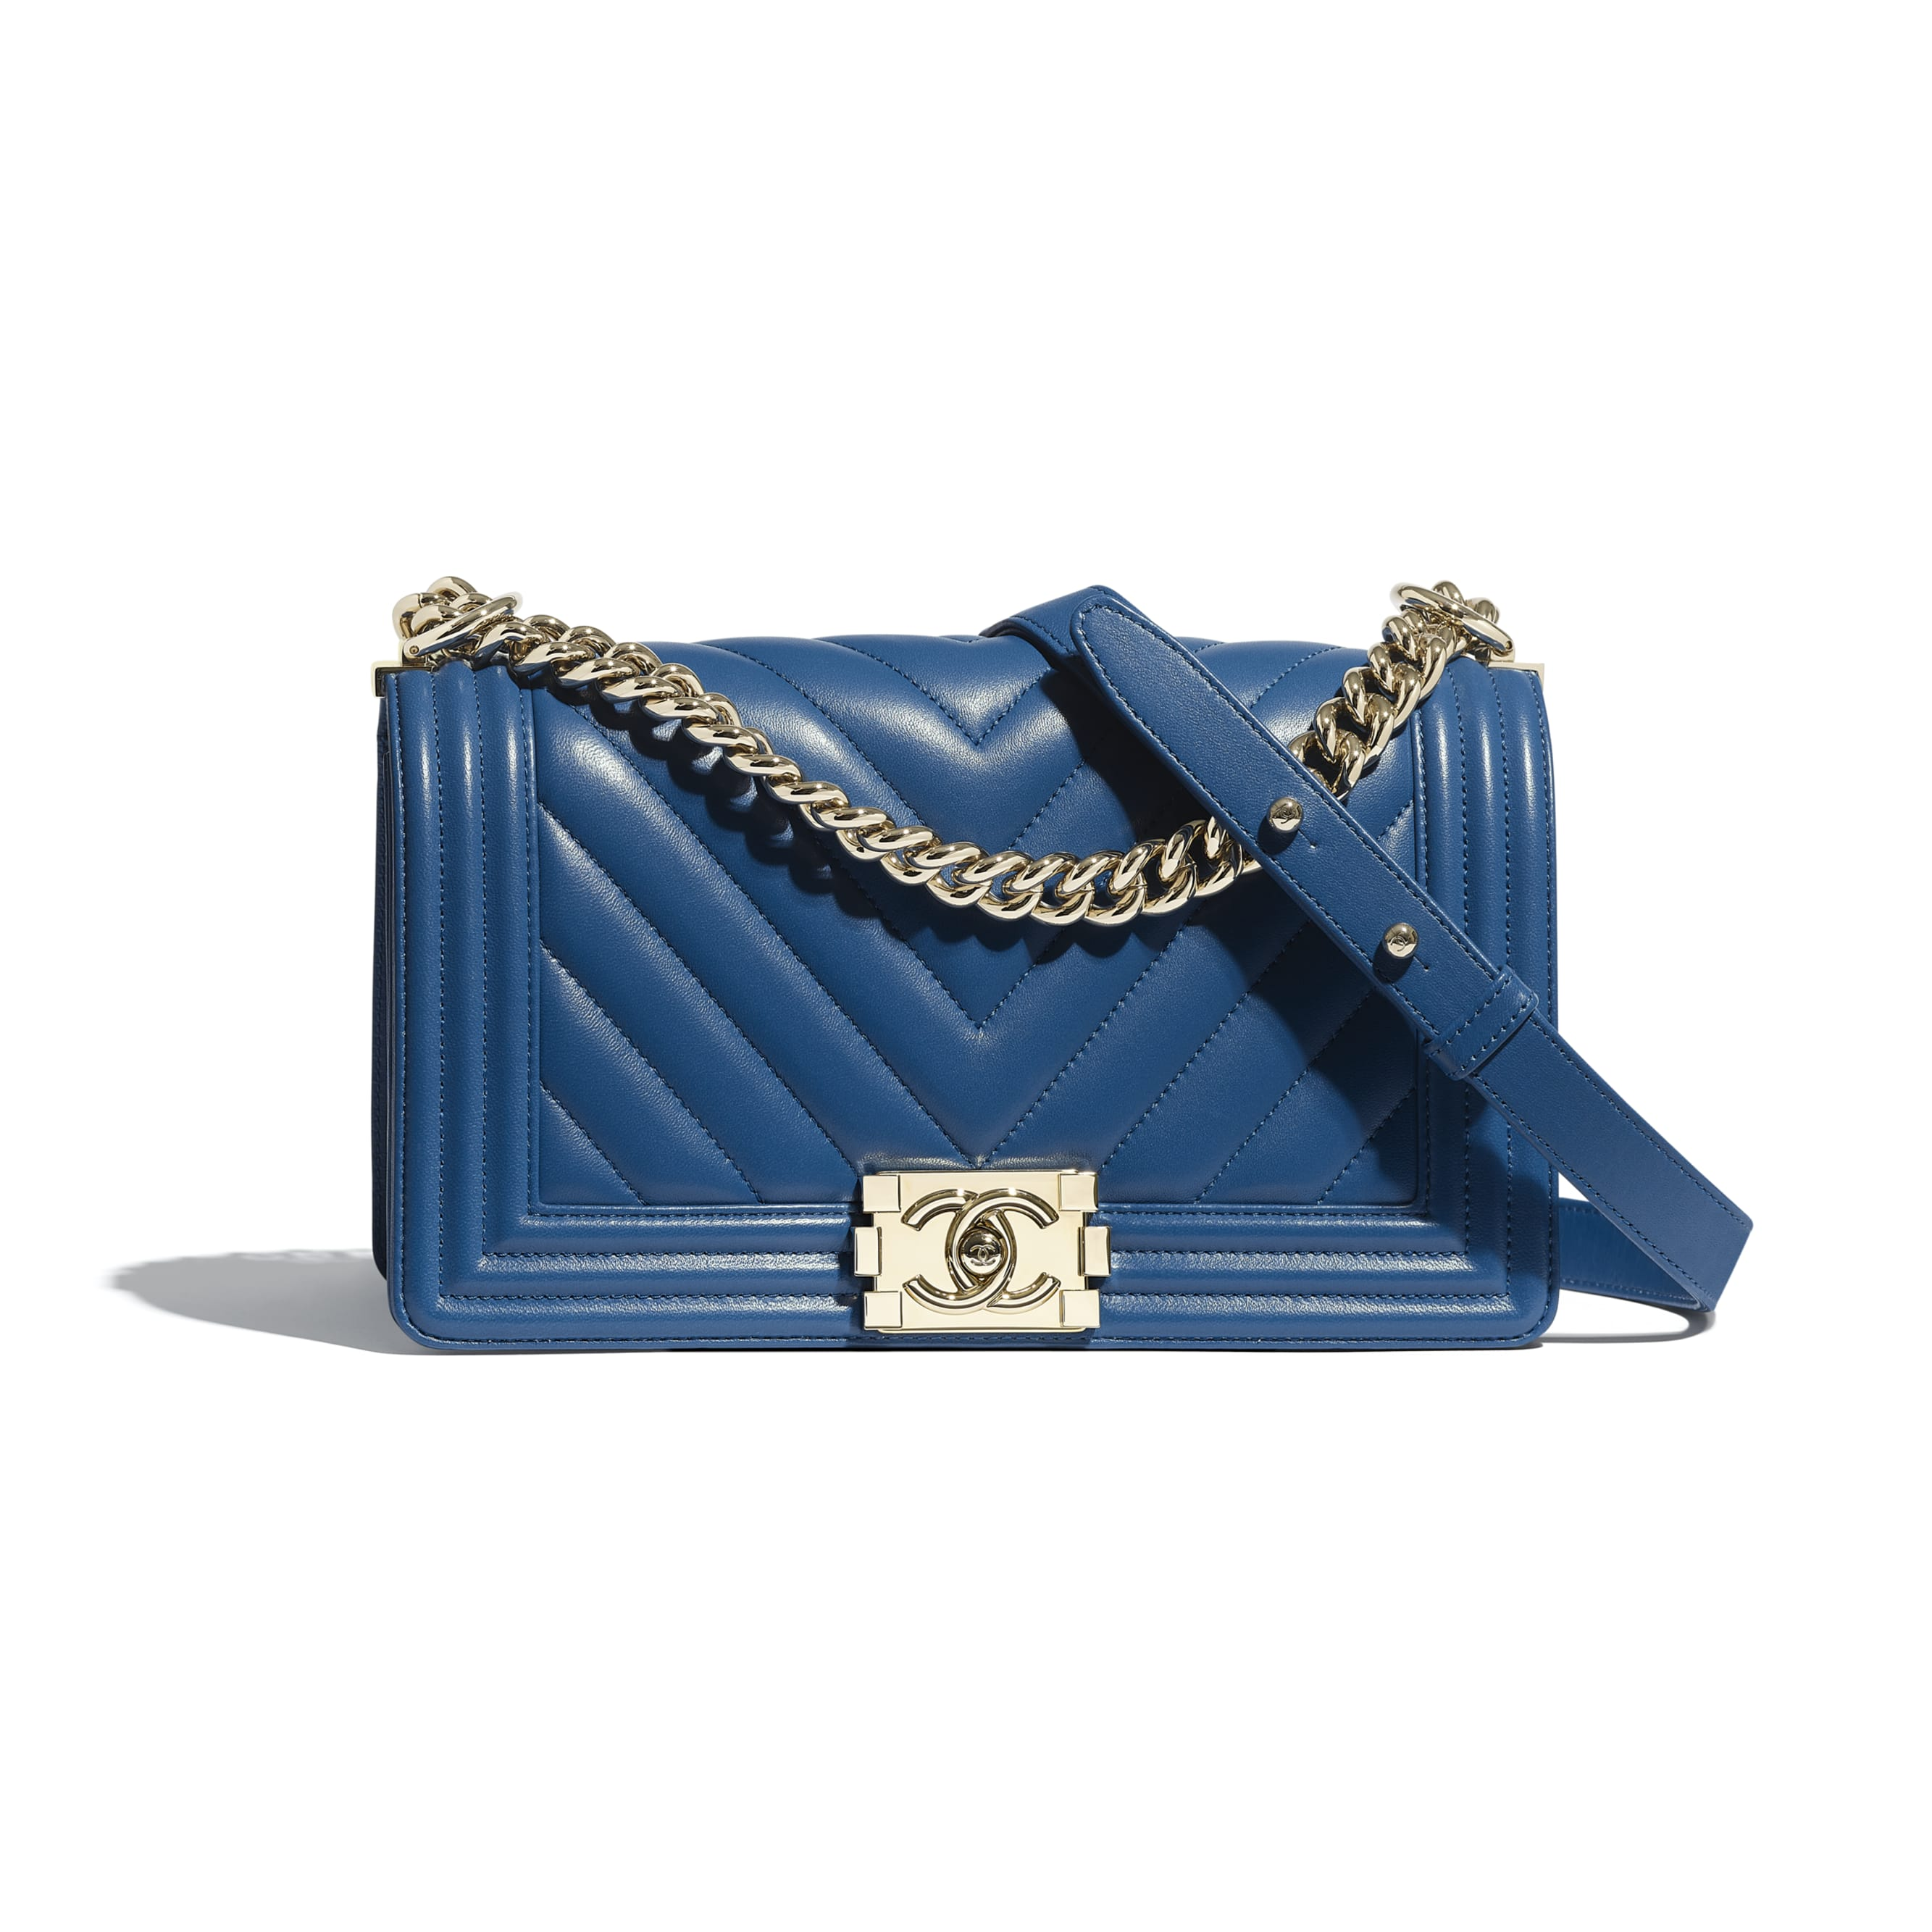 BOY CHANEL Handbag - Dark Blue - Calfskin & Gold-Tone Metal - Default view - see standard sized version